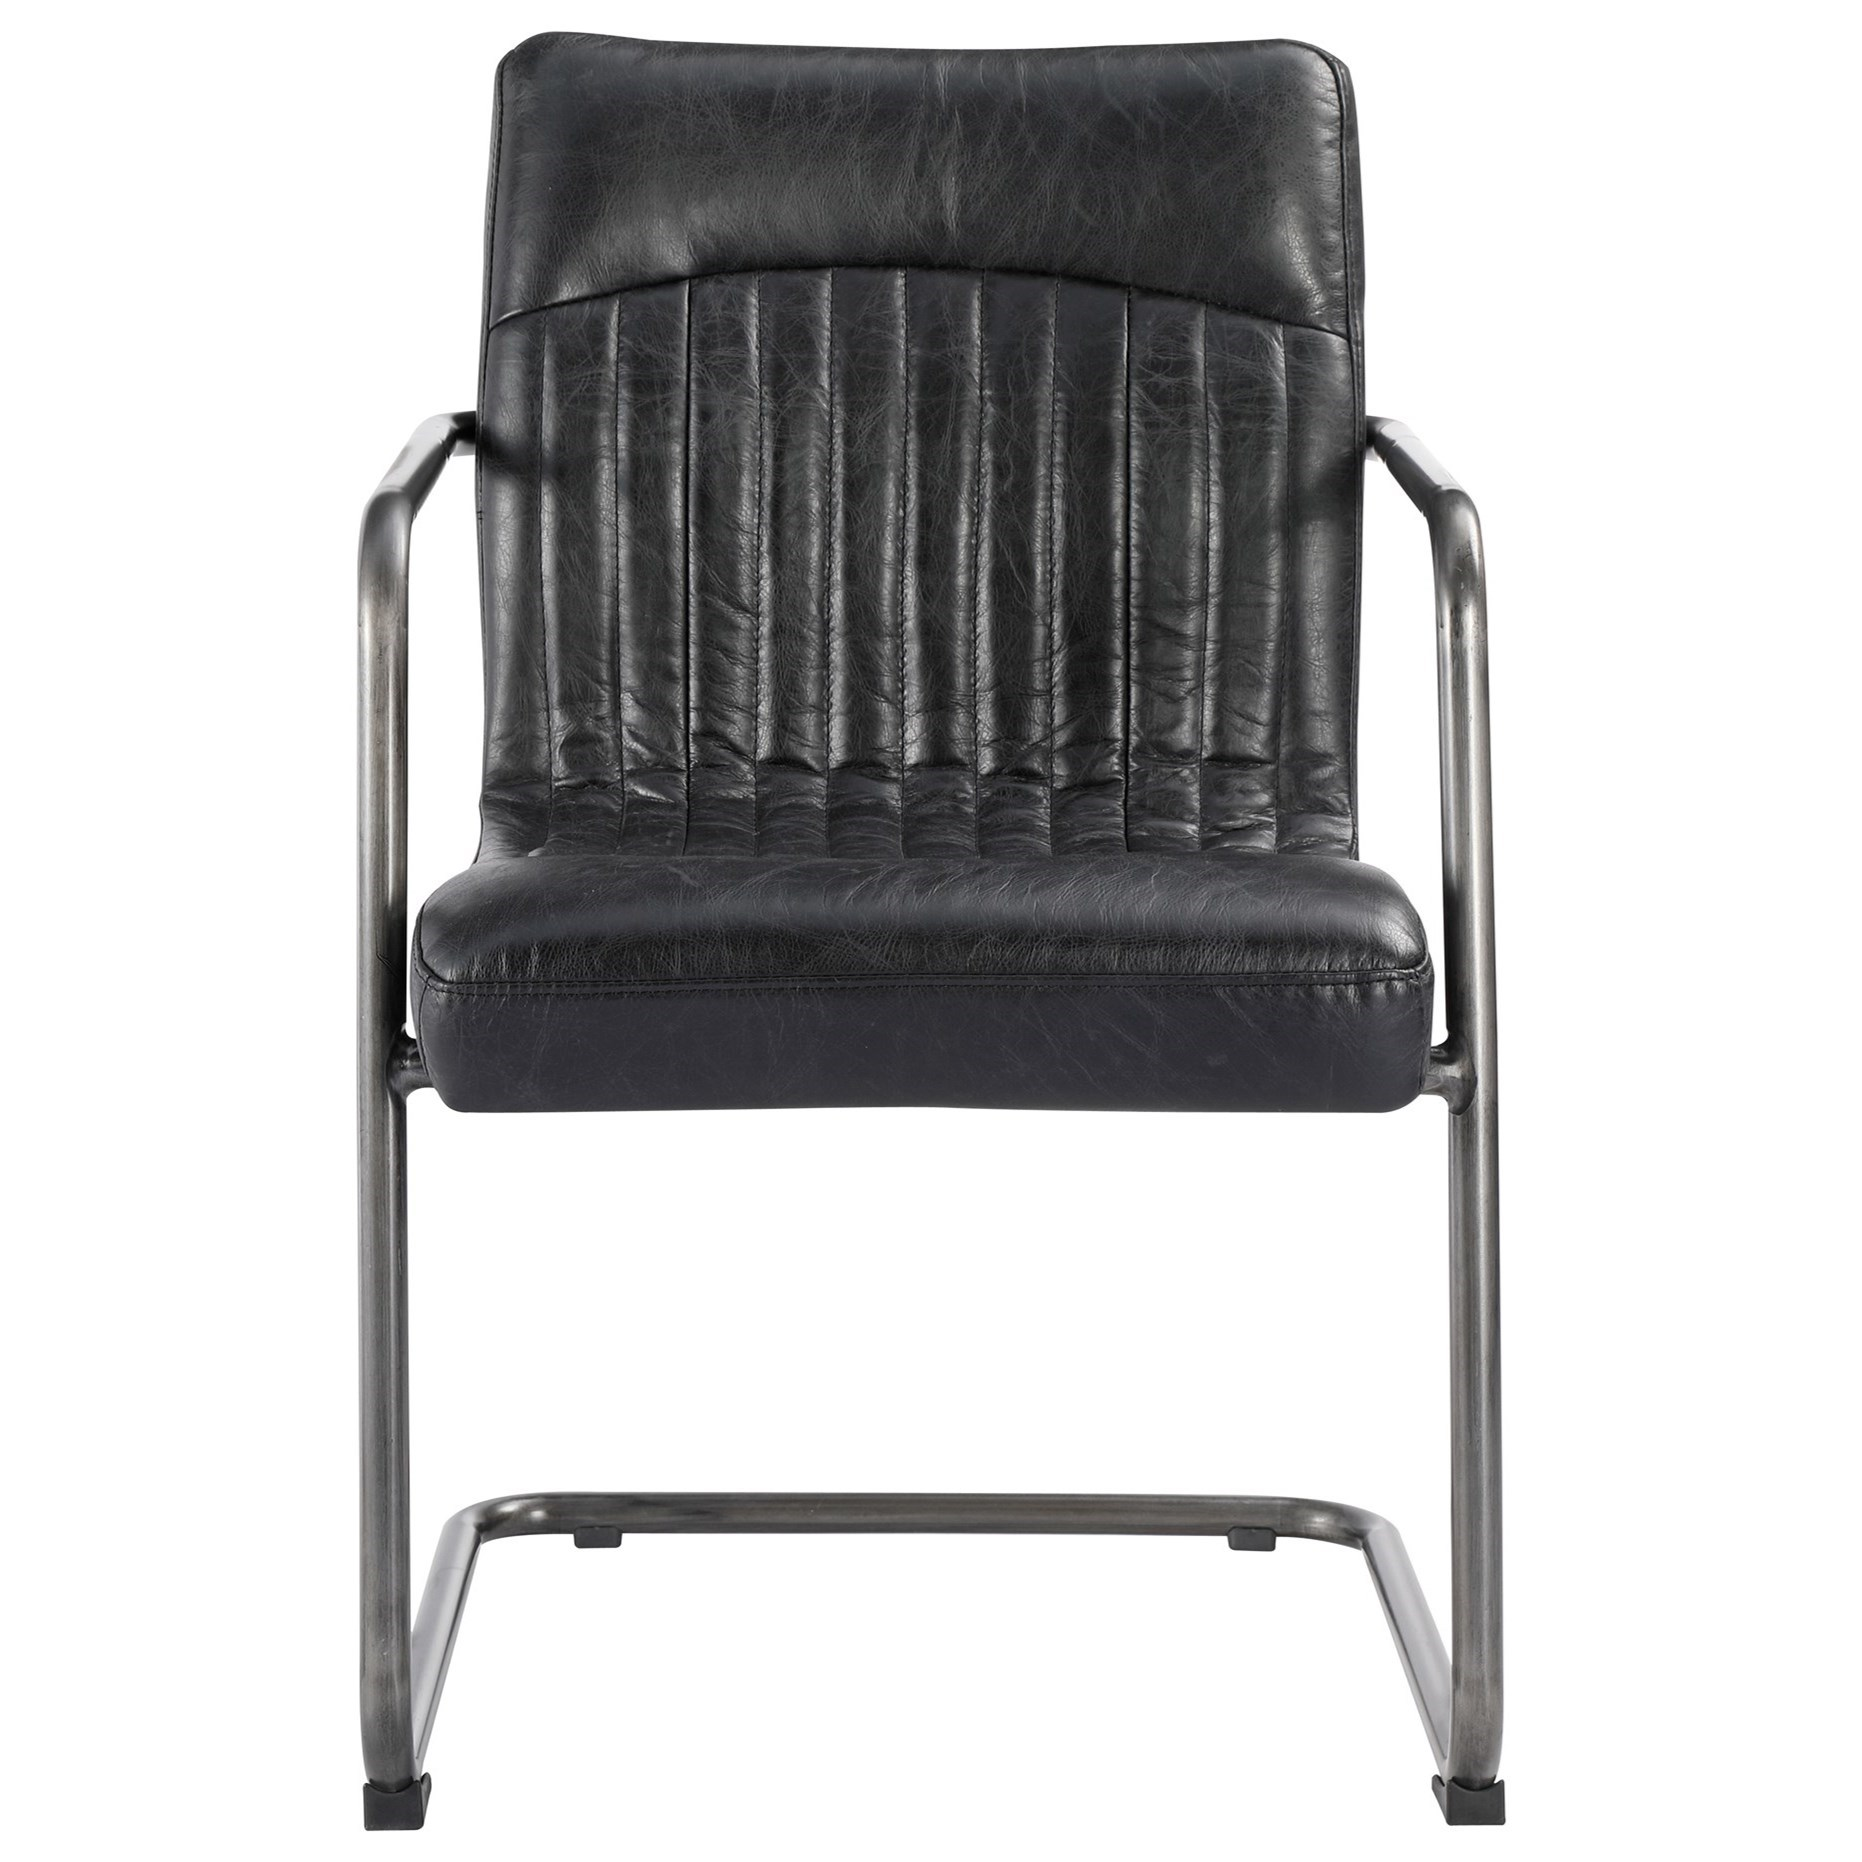 Ansel  Arm Chair by Moe's Home Collection at Stoney Creek Furniture